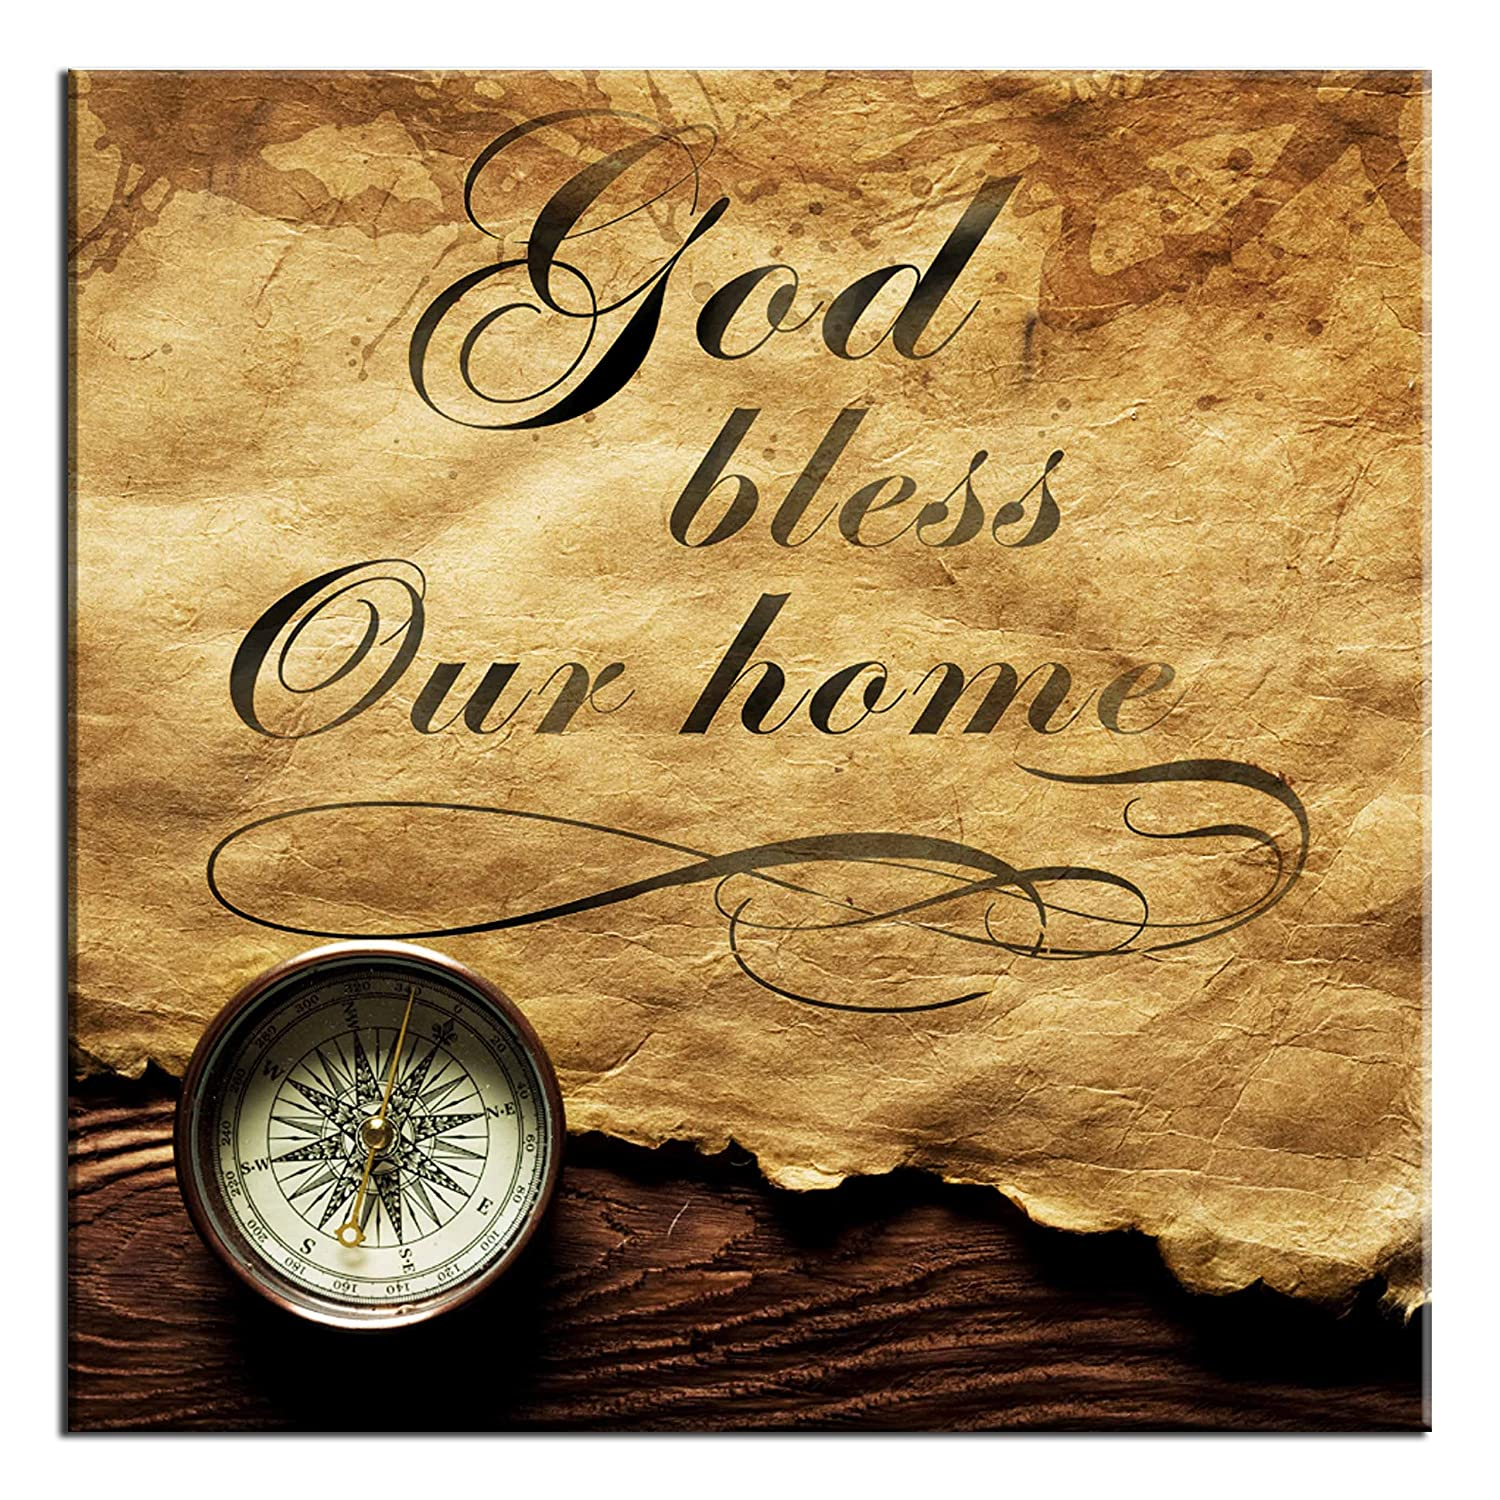 Amazon.com: Ode-Rin Art Prints Bible Quotes God Bless Our Home Wall ...